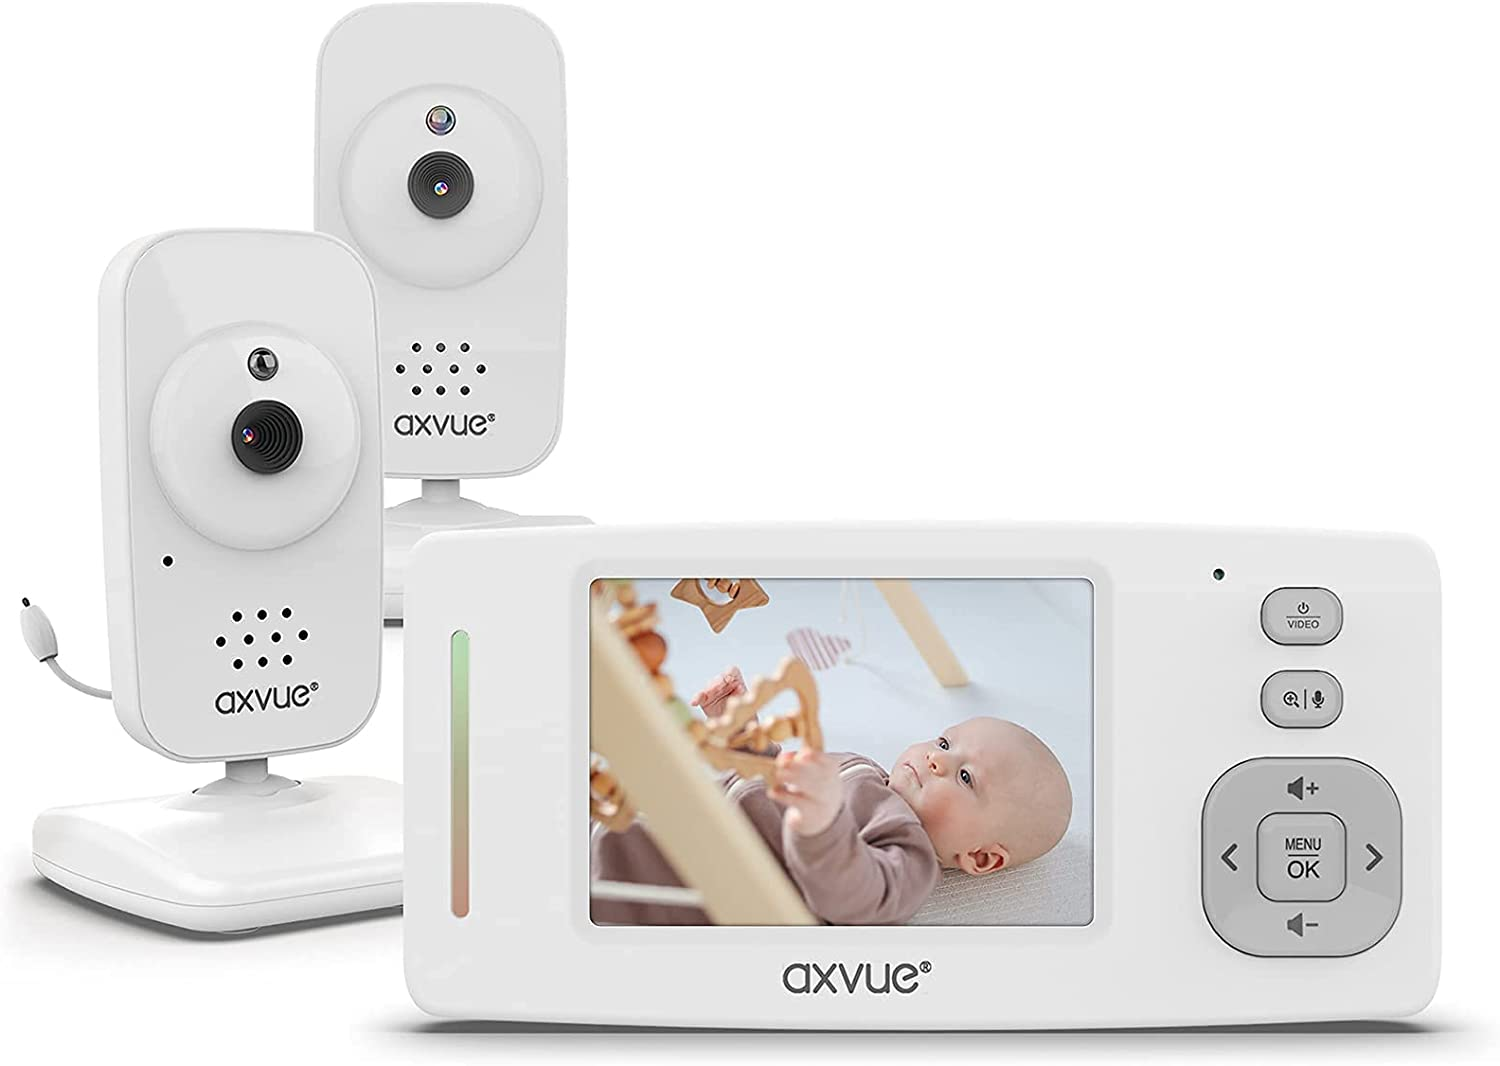 [Upgraded 2021] Video Baby Monitor w/ 2 Digital Cameras HR Color Screen Ultra Long Life Battery 1,000ft Range Day/Night Vision Temperature Display by AXVUE